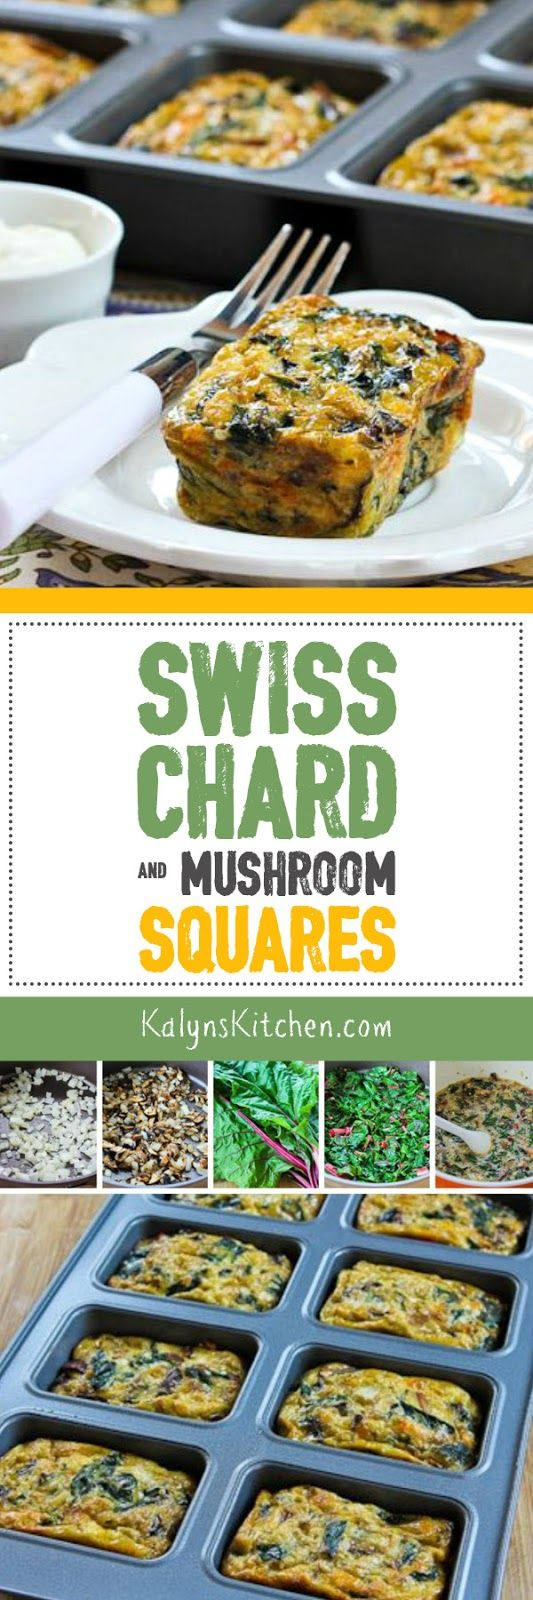 Swiss Chard and Mushroom Squares are a fun idea for breakfast, lunch, or dinner, and this recipe is low-carb, gluten-free, South Beach Diet Phase One, and perfect for Meatless Monday! [found on KalynsKitchen.com]